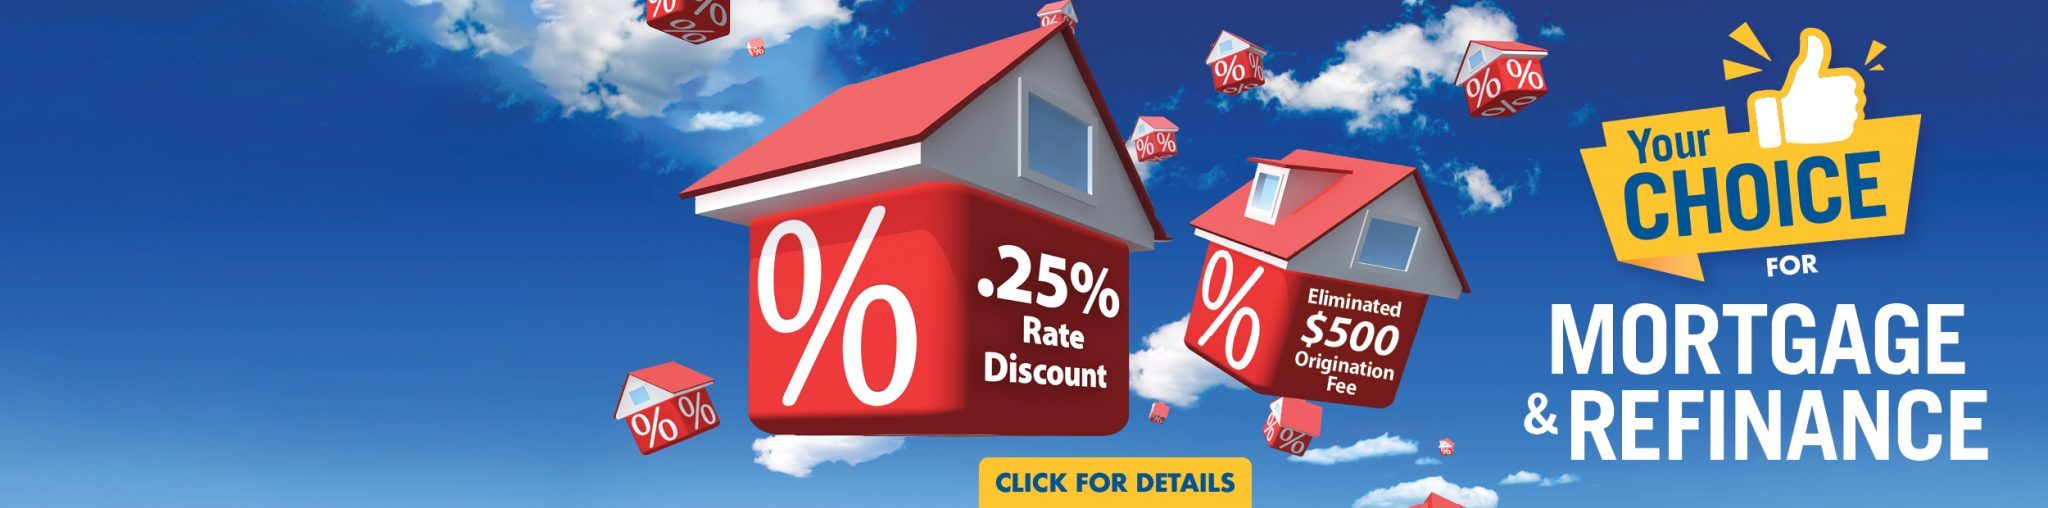 Your choice for mortgage and refinance home page banner featuring red houses with percentage symbols on them in the sky.